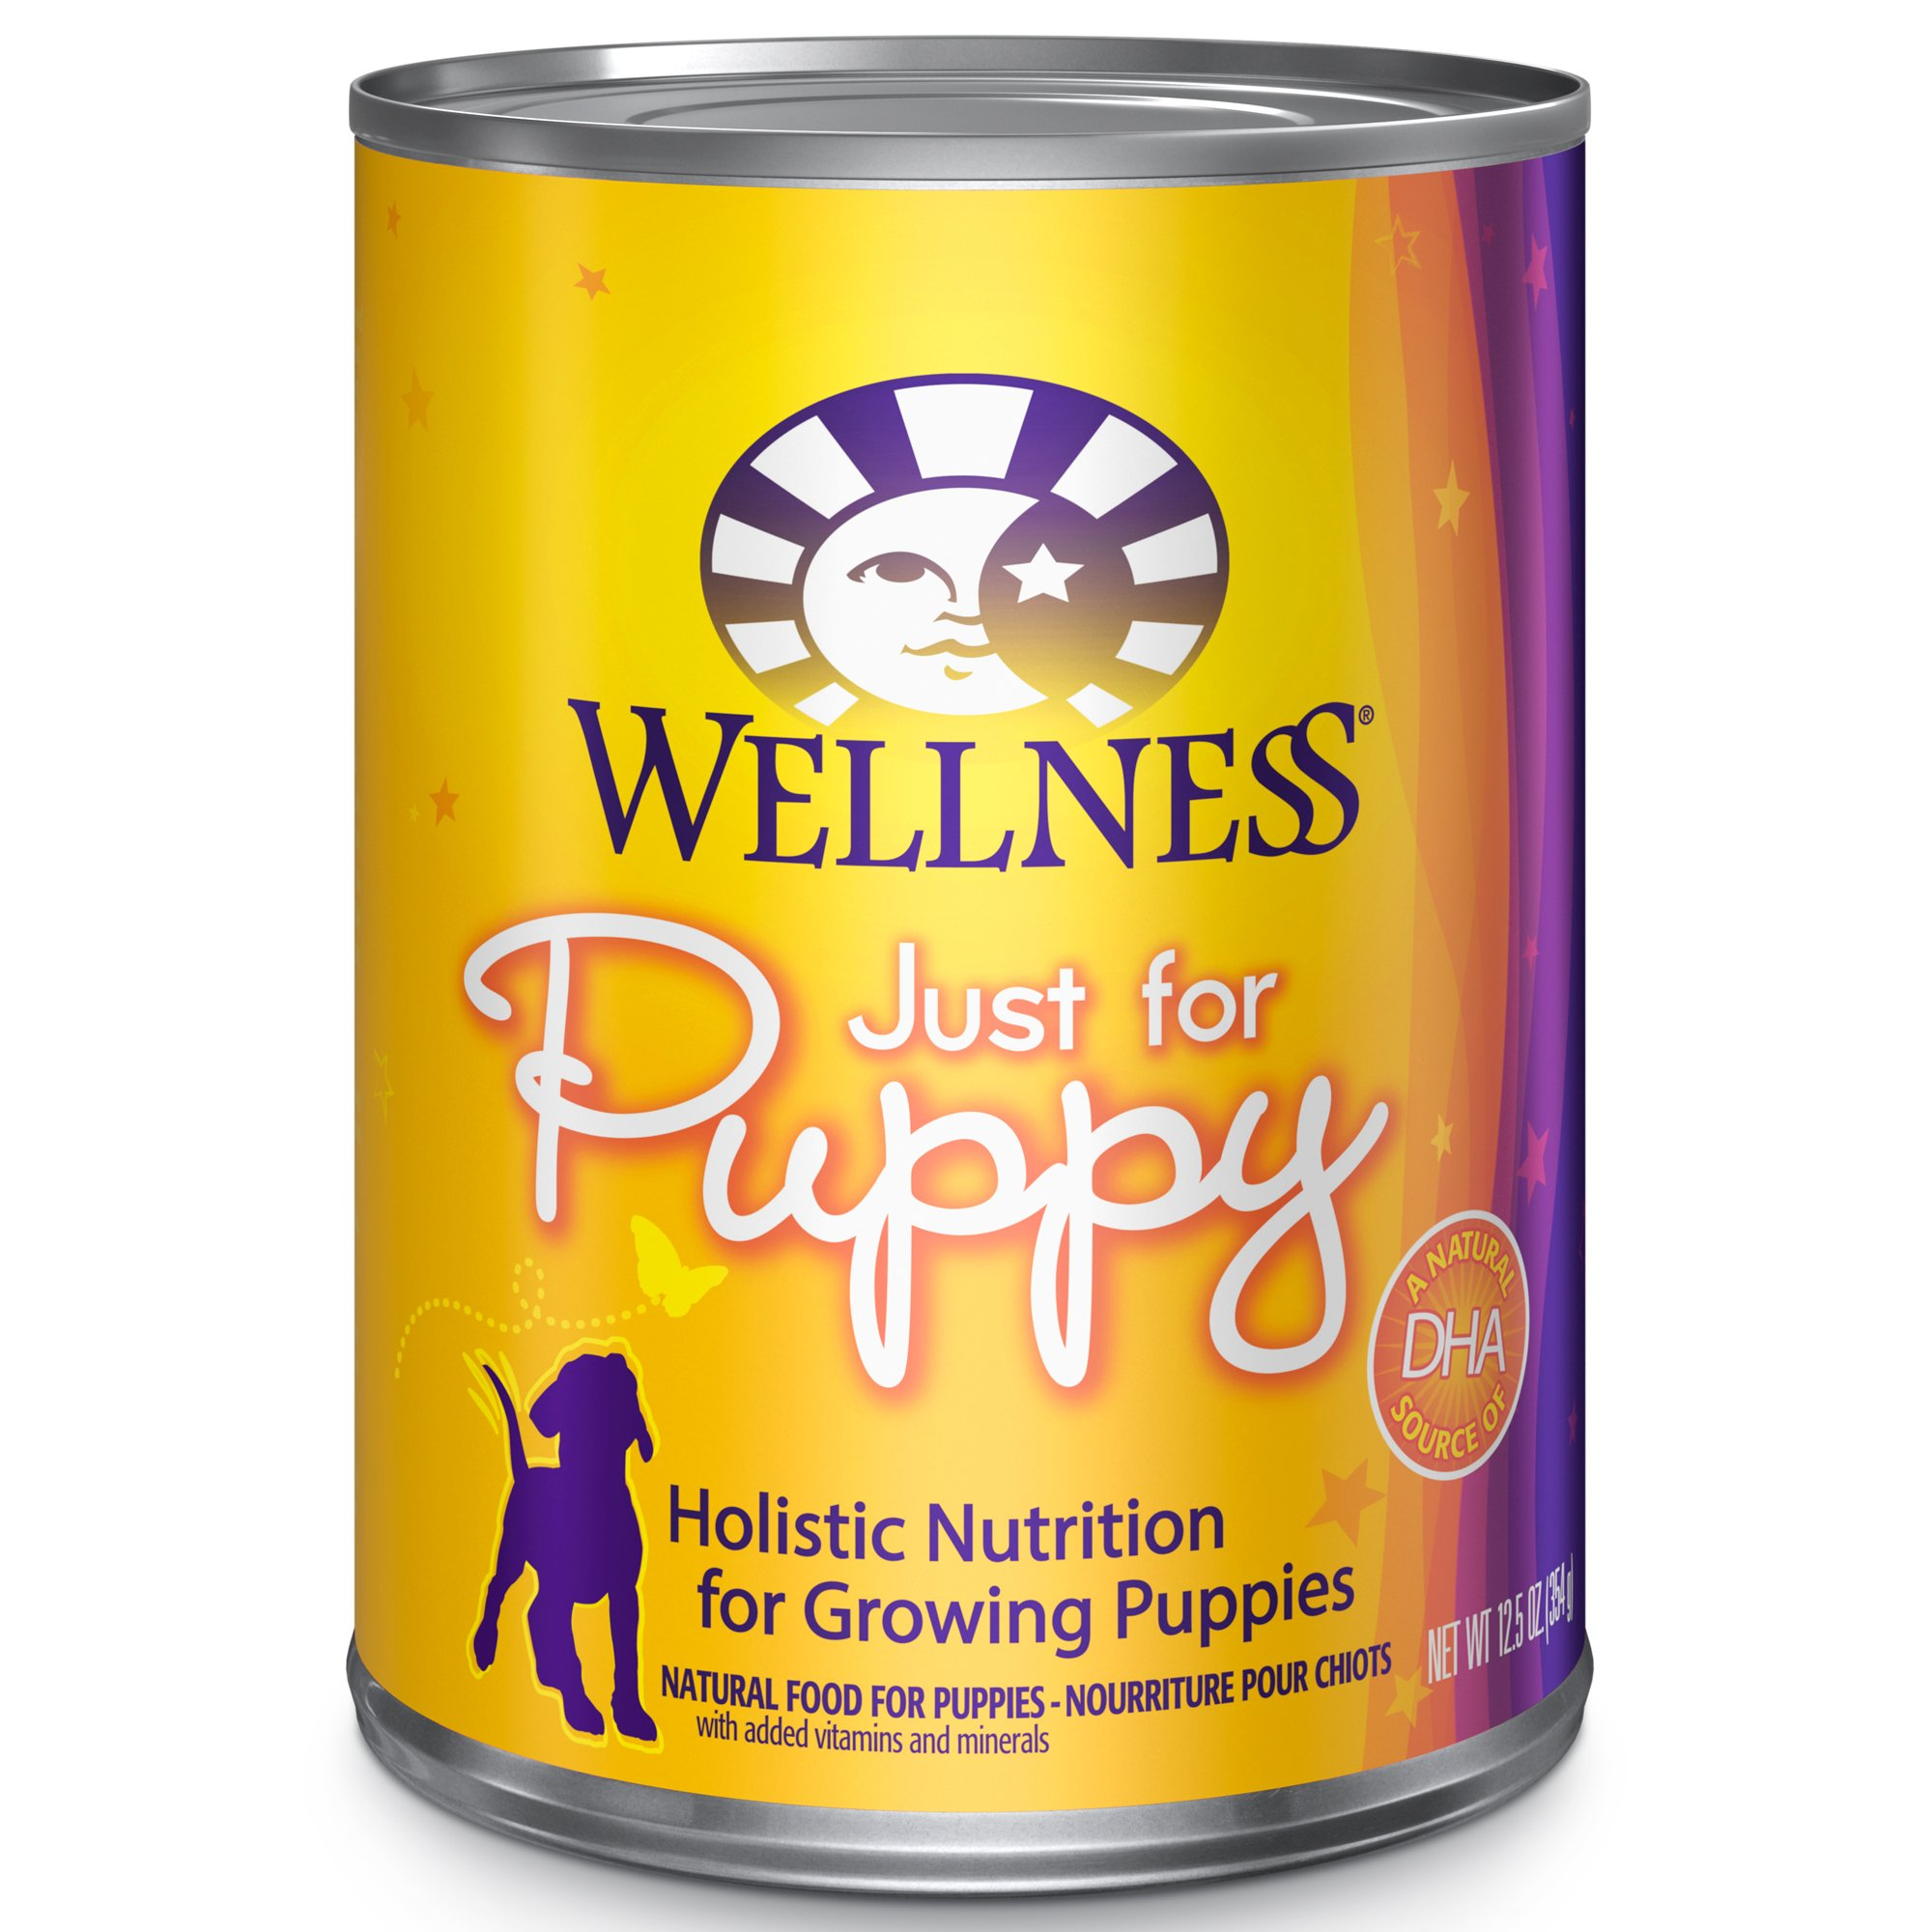 Wellness Puppy 12.5oz Canned Dog Food, Case of 12